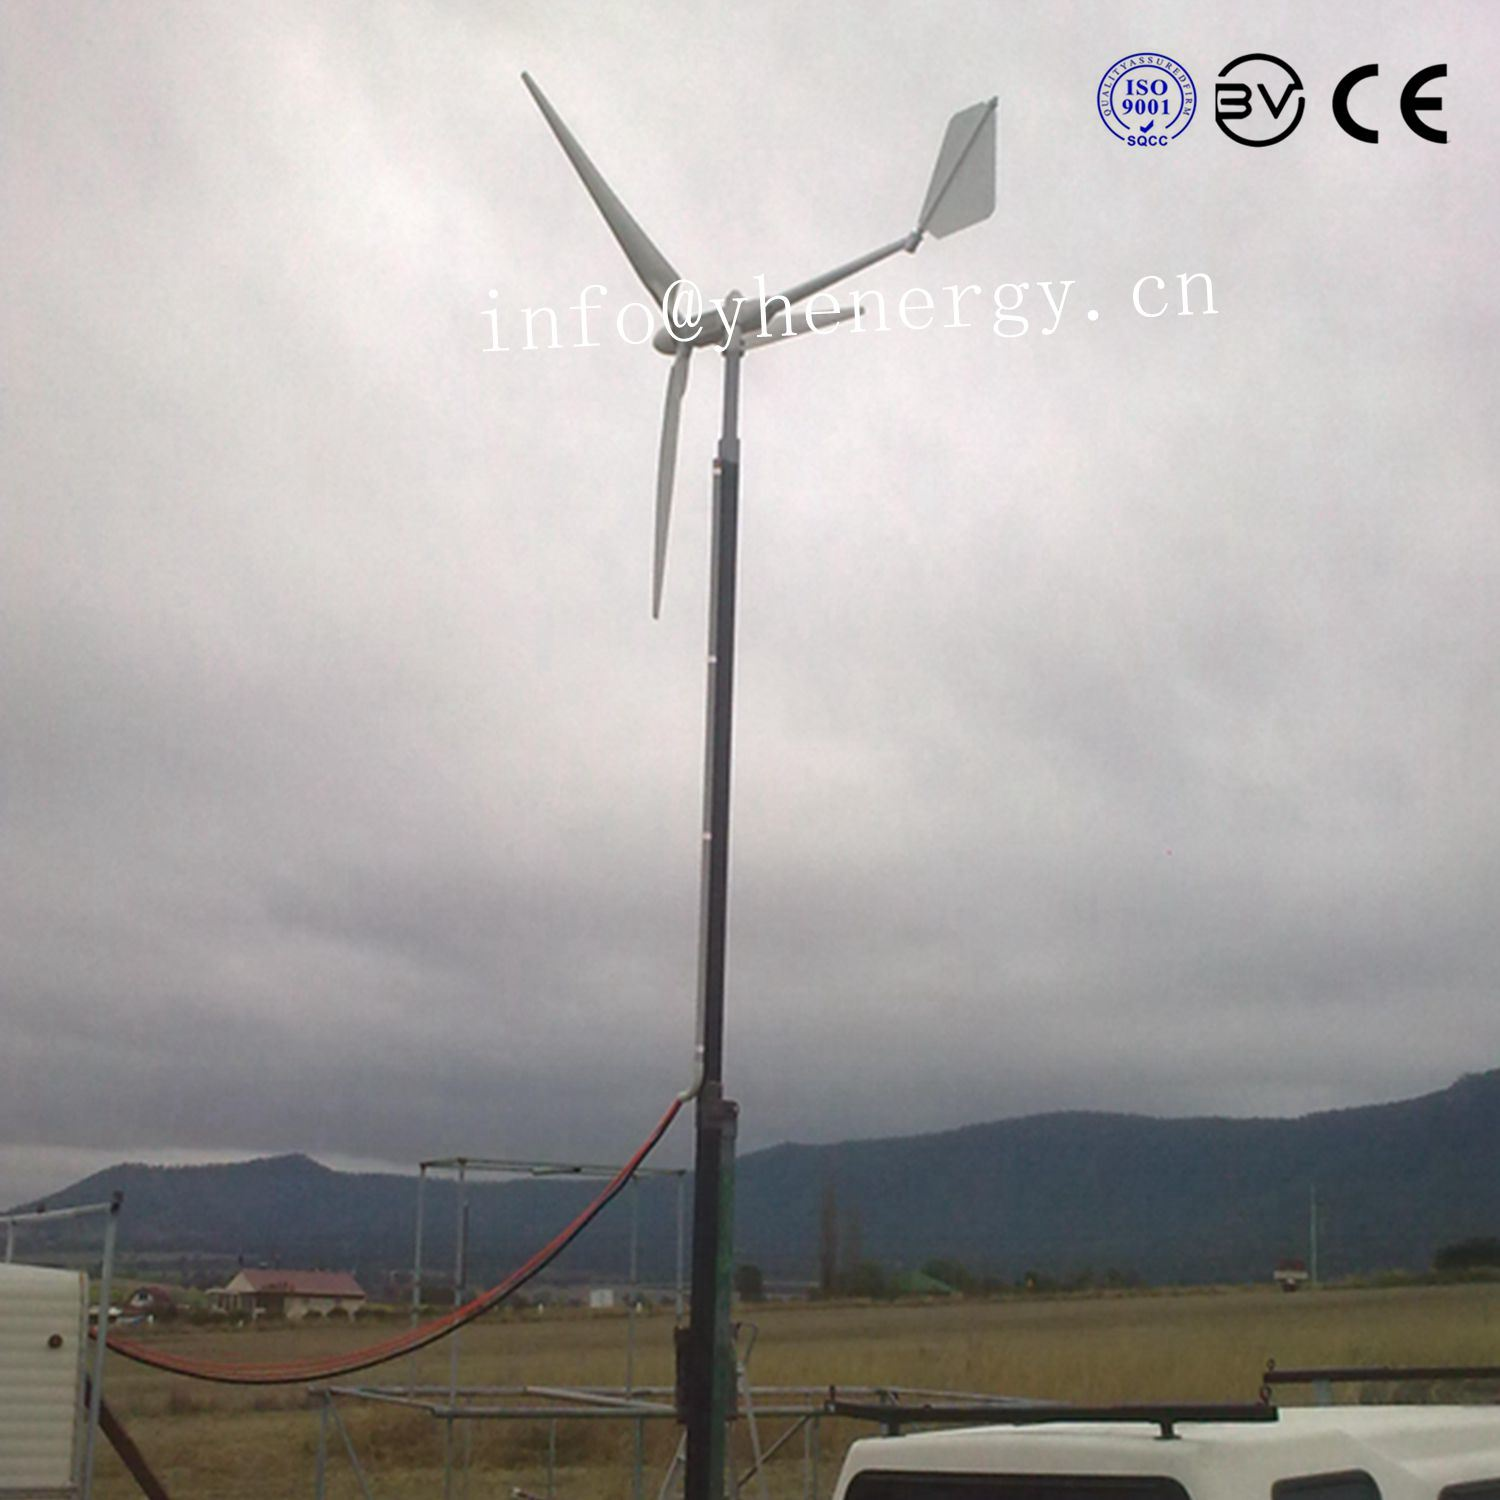 2kw Wind Turbine / Wind Power Generator System for Home Use pictures & photos